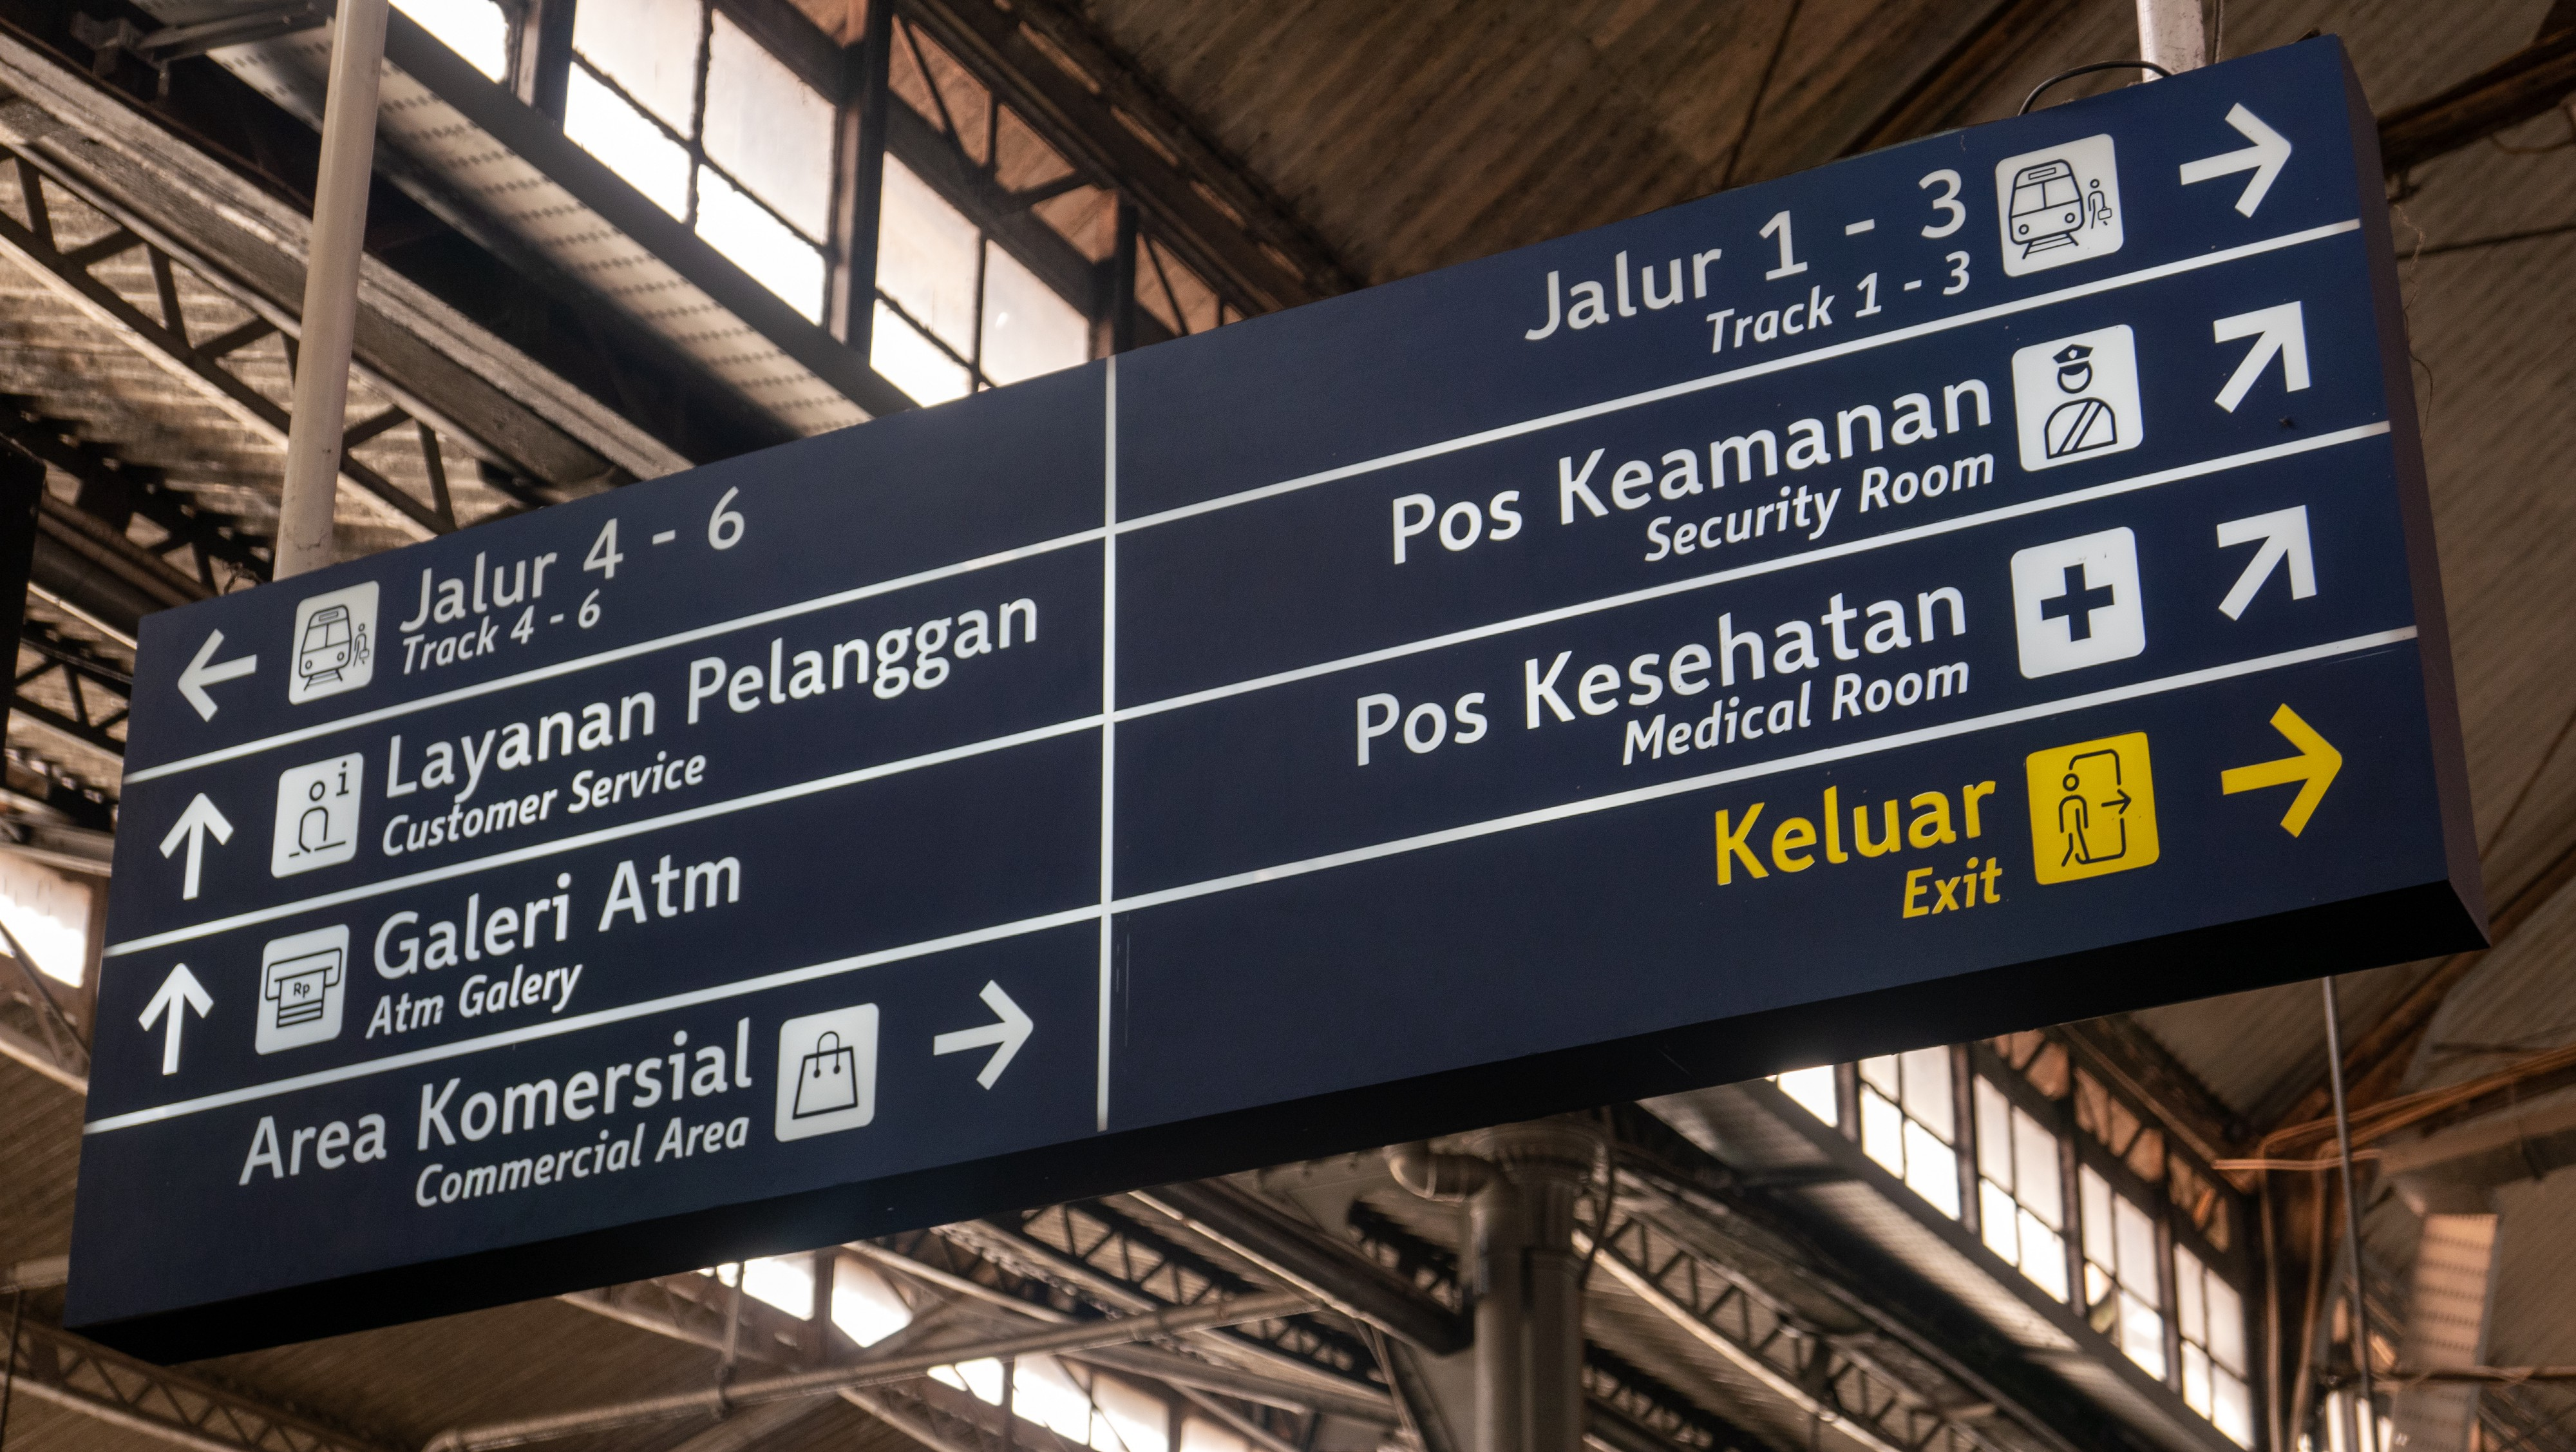 A sign in a train or bus station showing 8 different directions